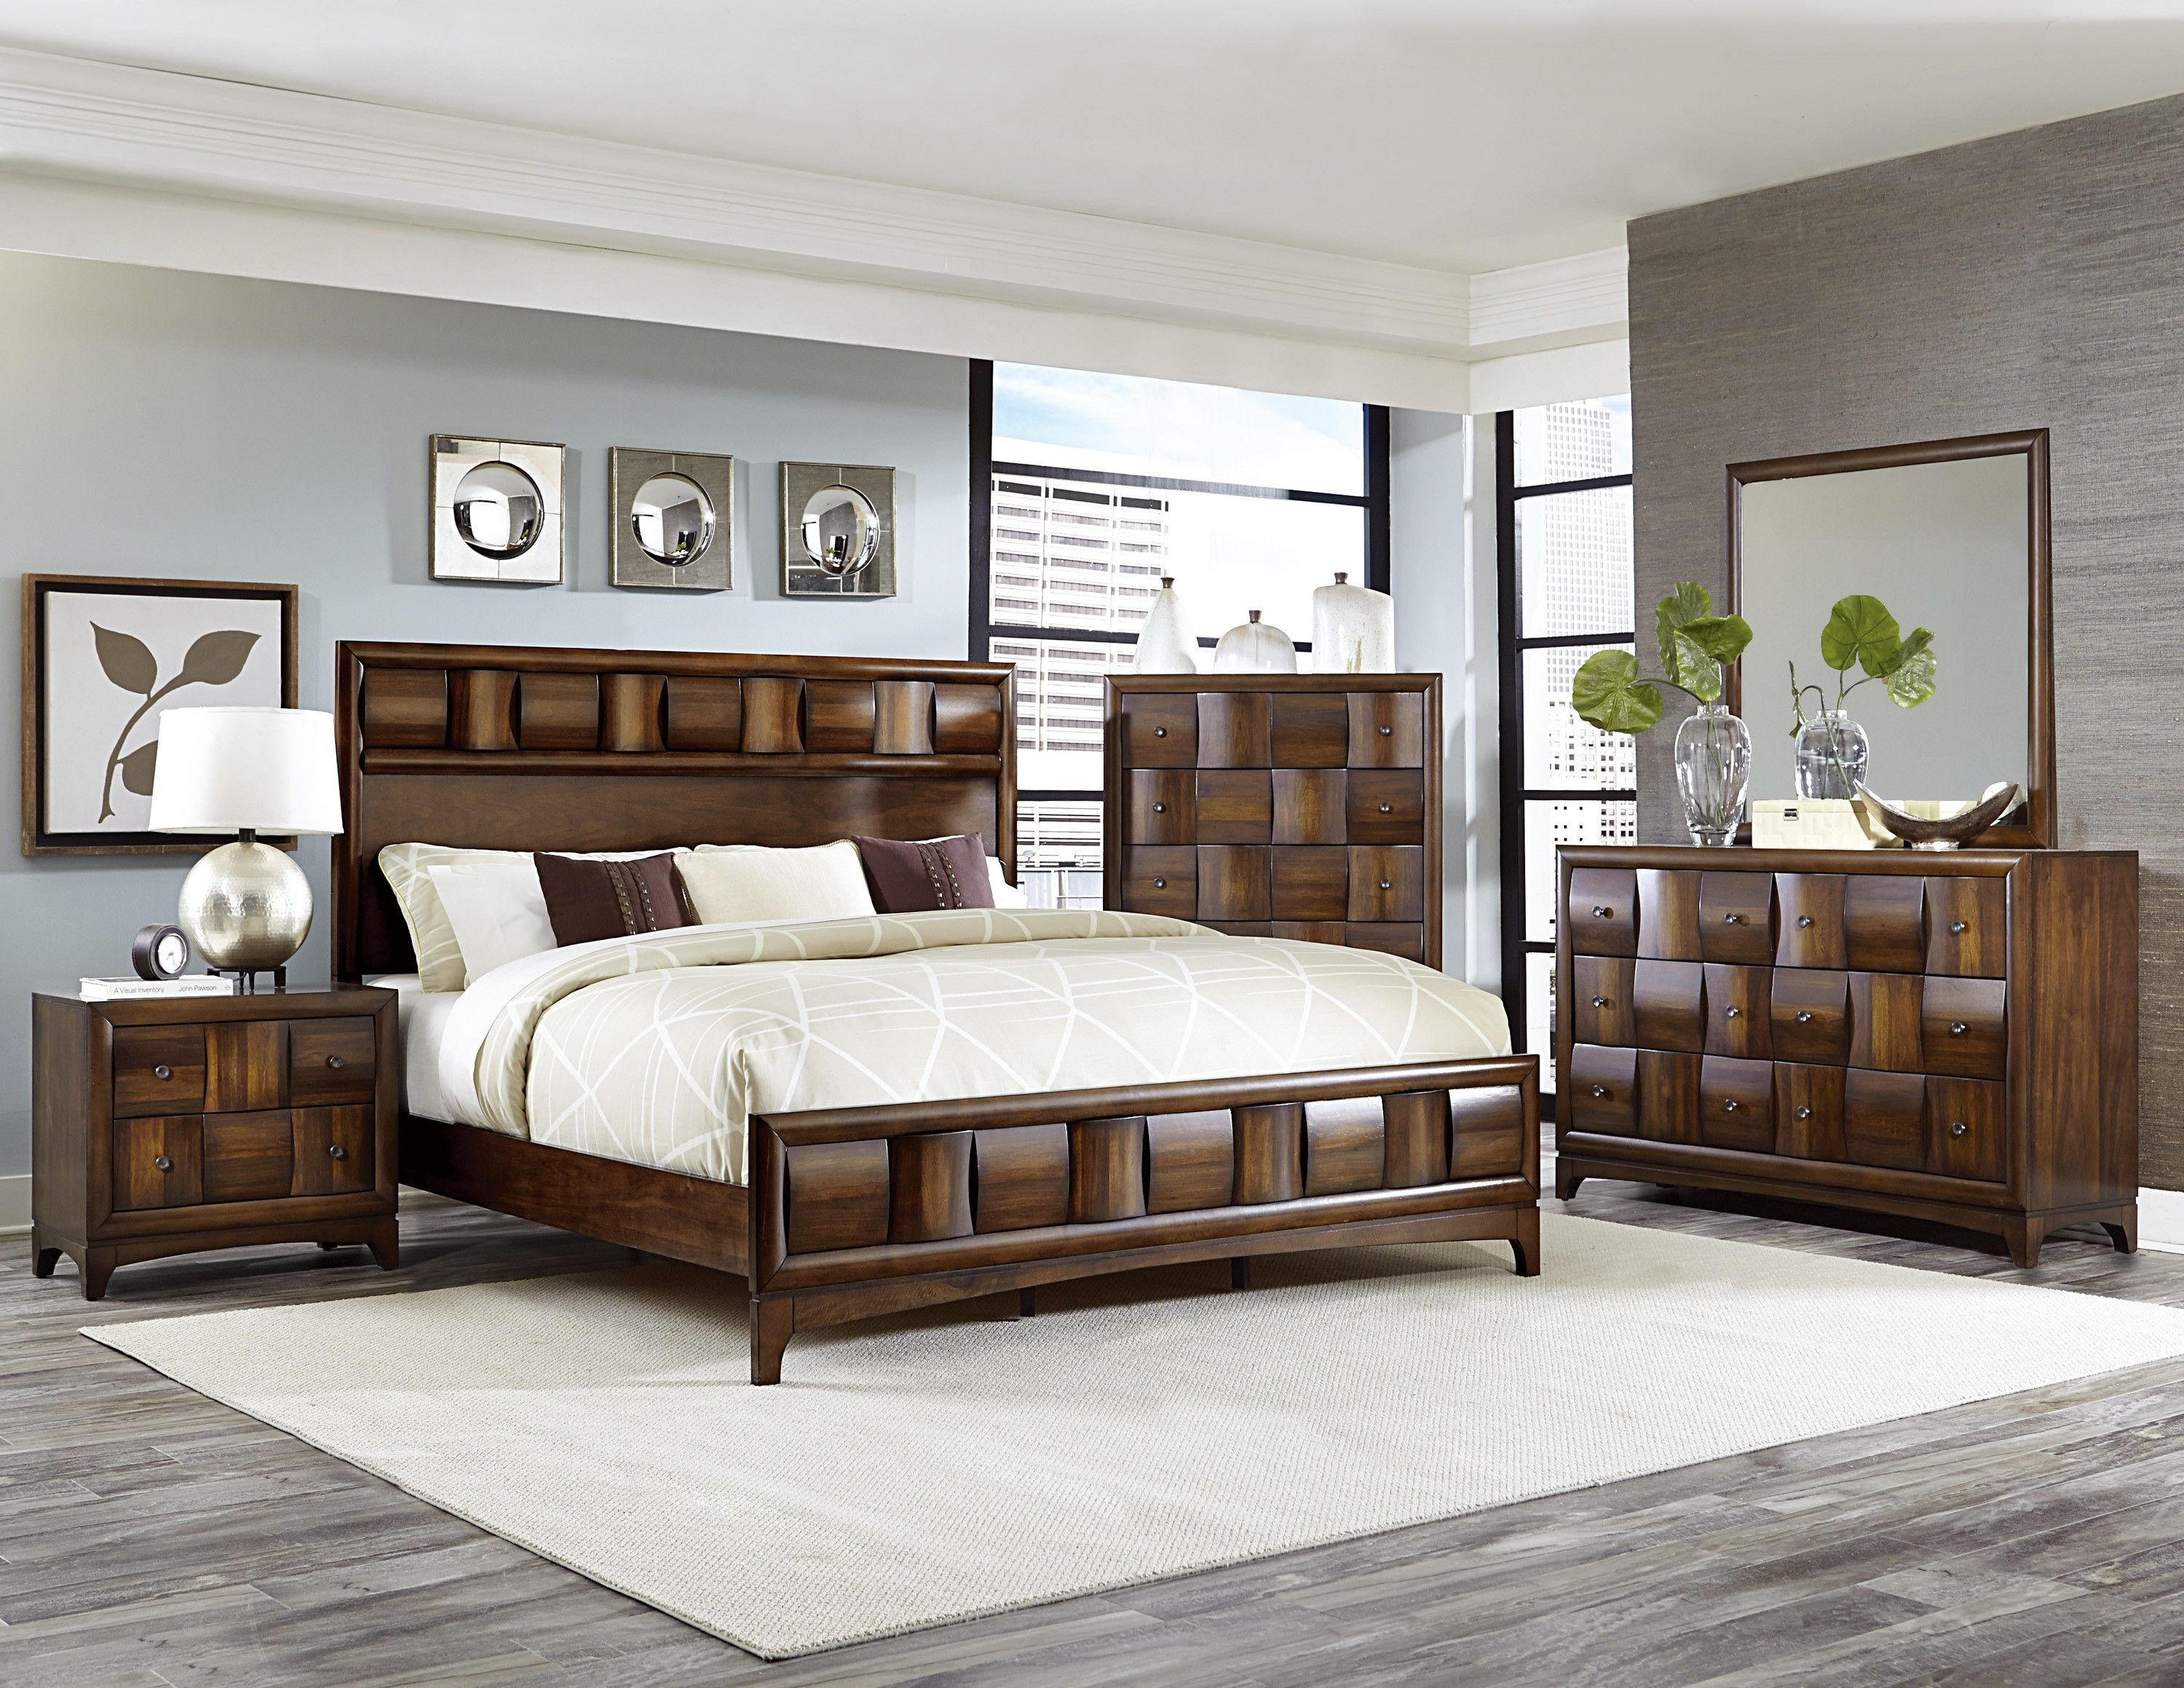 Porter pc Bedroom Set  pintura pieza  Pinterest  Schlafzimmer